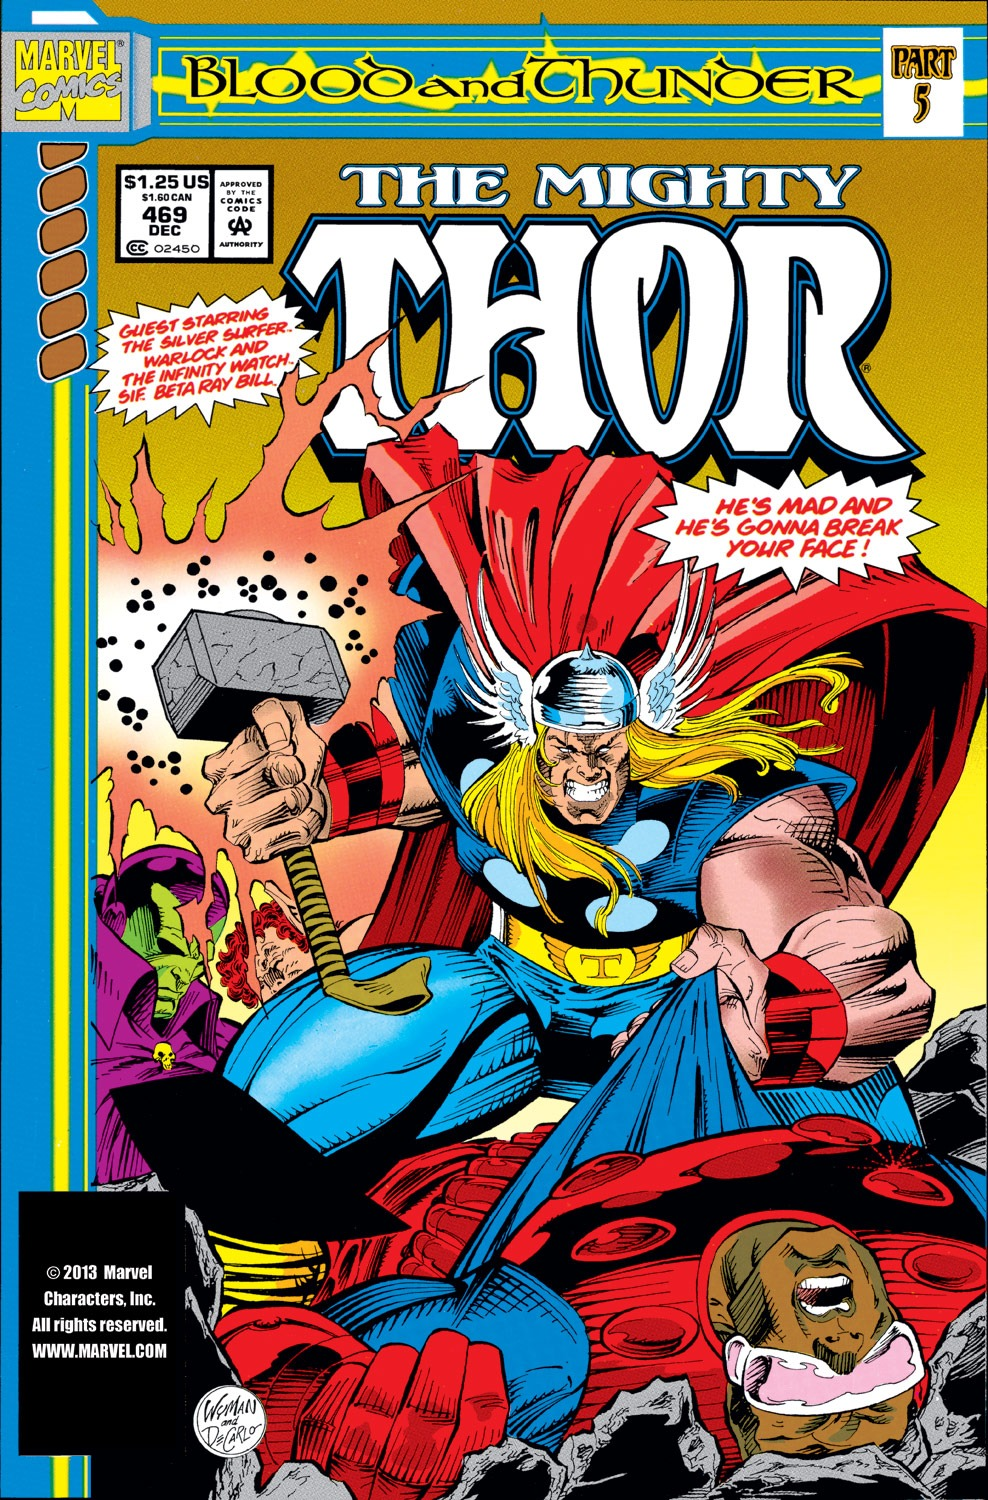 Thor (1966) 469 Page 1